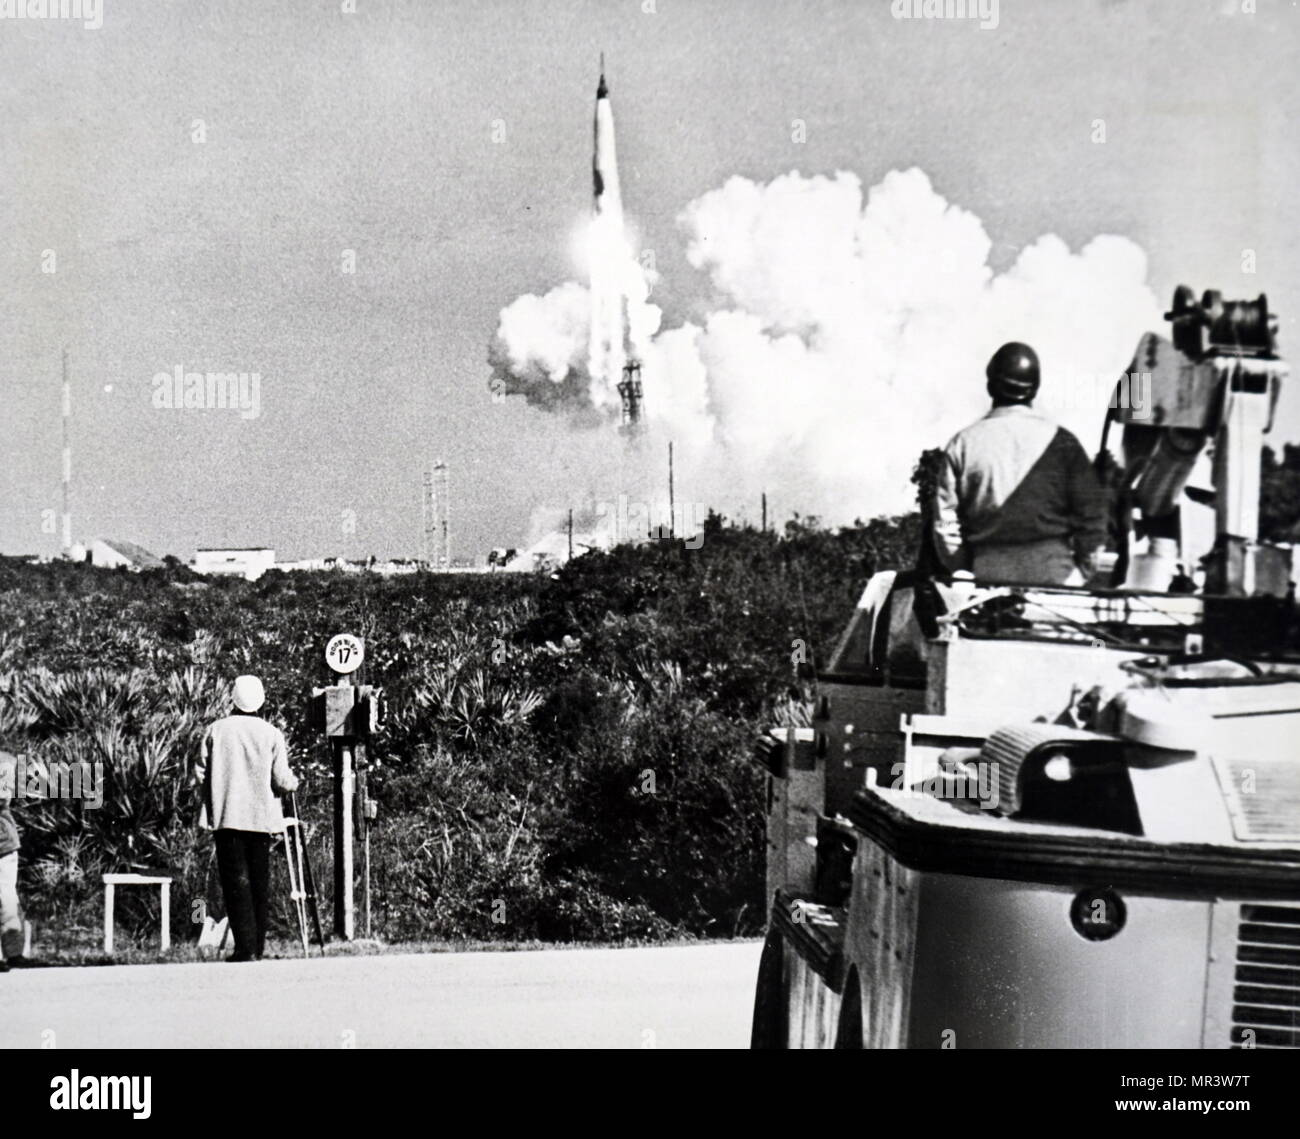 Photograph taken during the launch of Mercury-Atlas 8. Dated 20th century - Stock Image